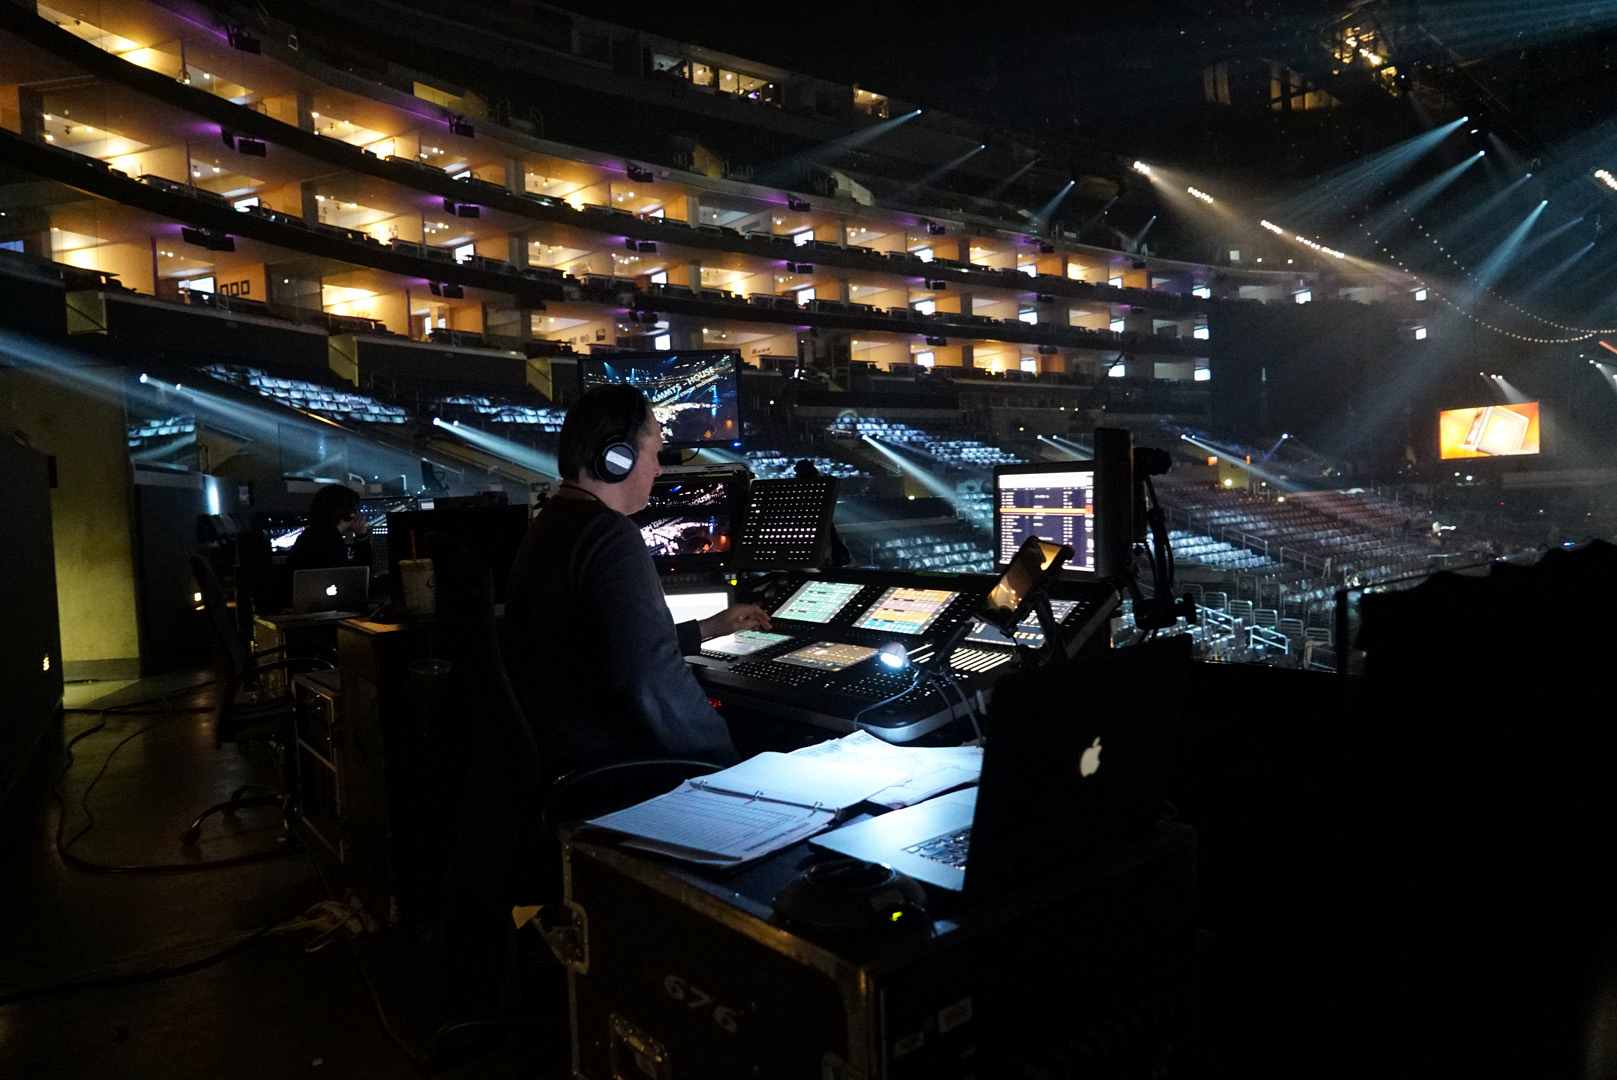 It's all about the details for the GRAMMYs production crew.